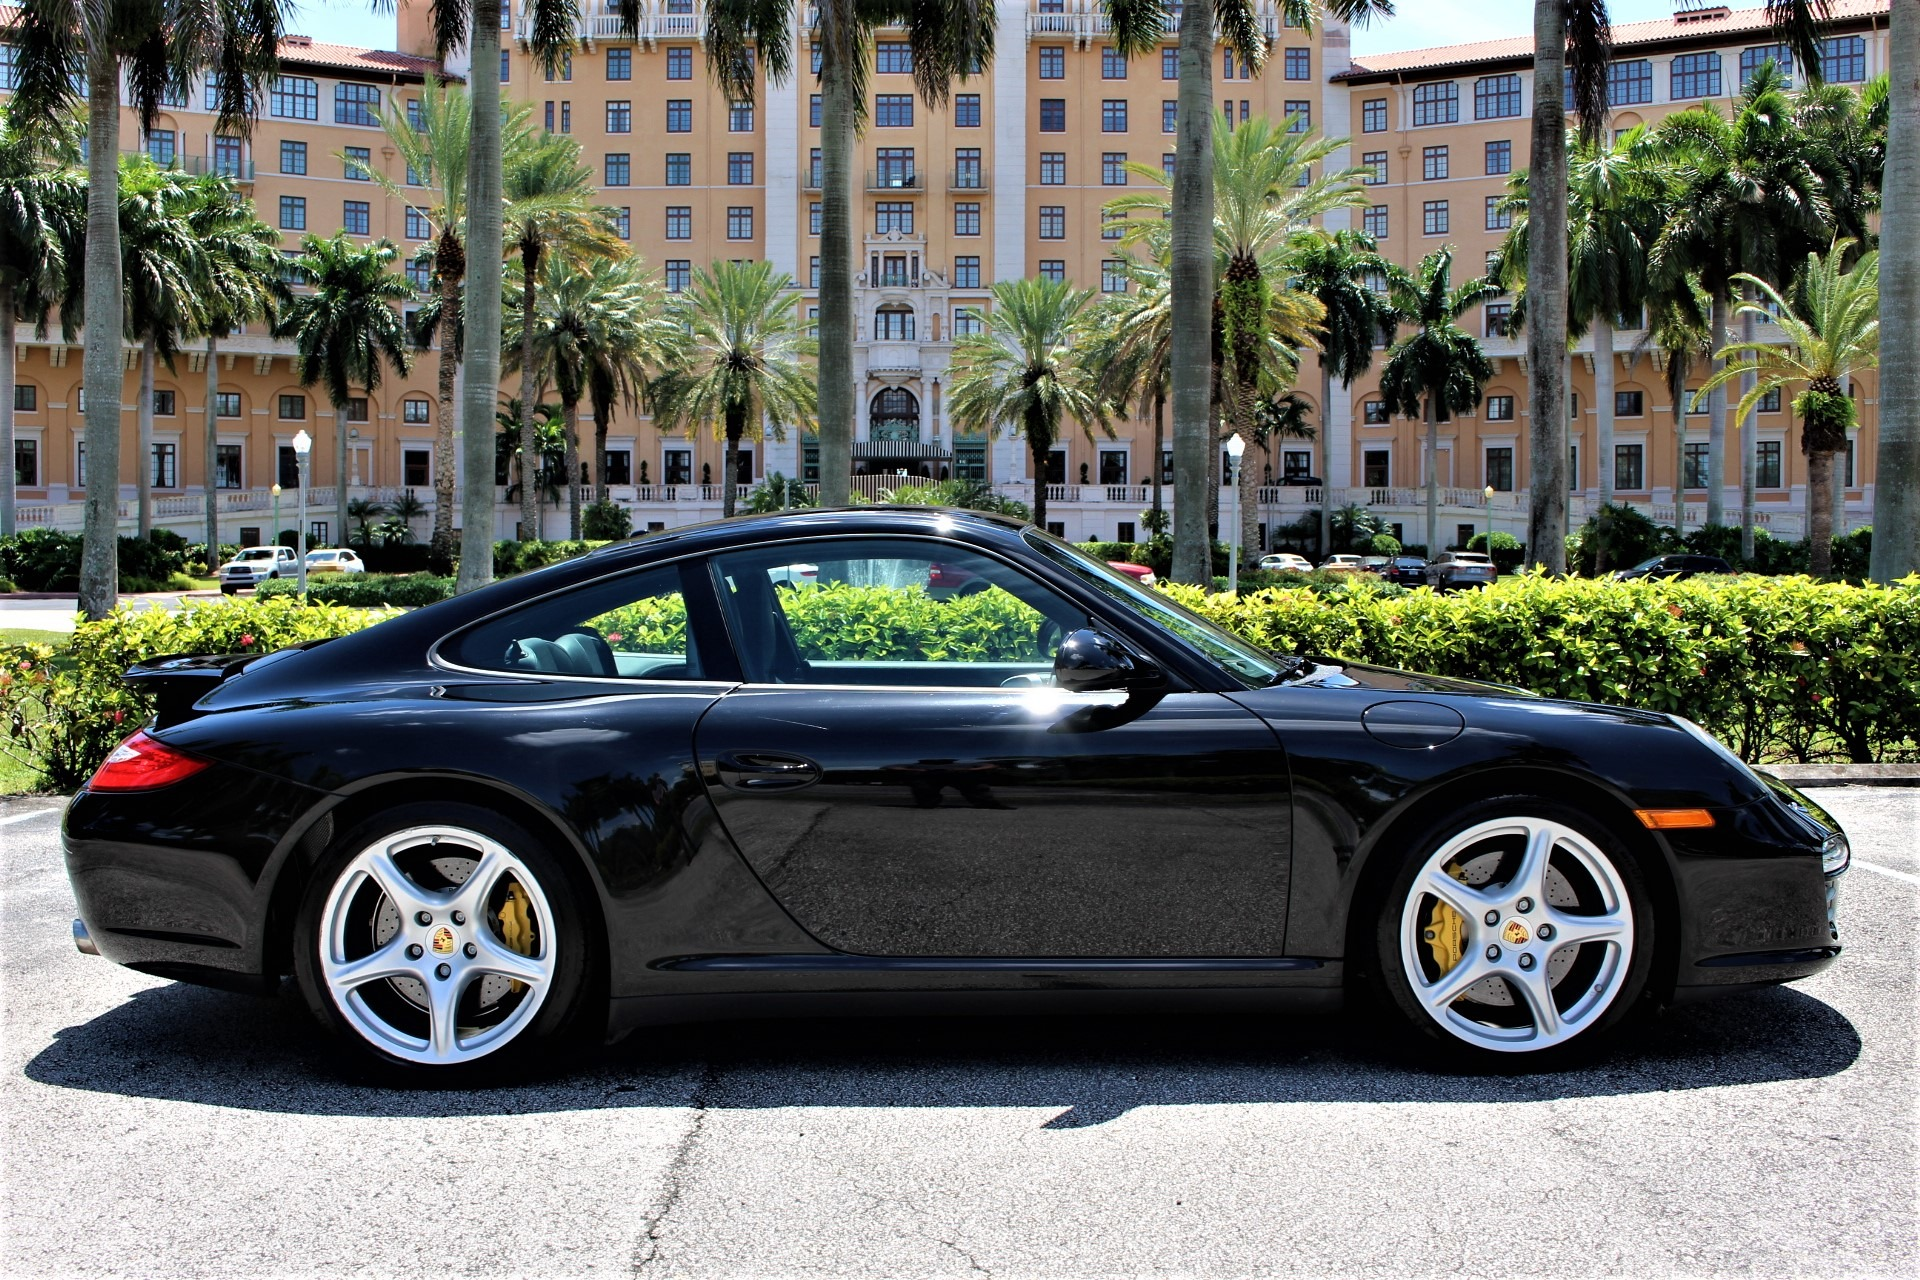 Used 2009 Porsche 911 Carrera 4S for sale Sold at The Gables Sports Cars in Miami FL 33146 3